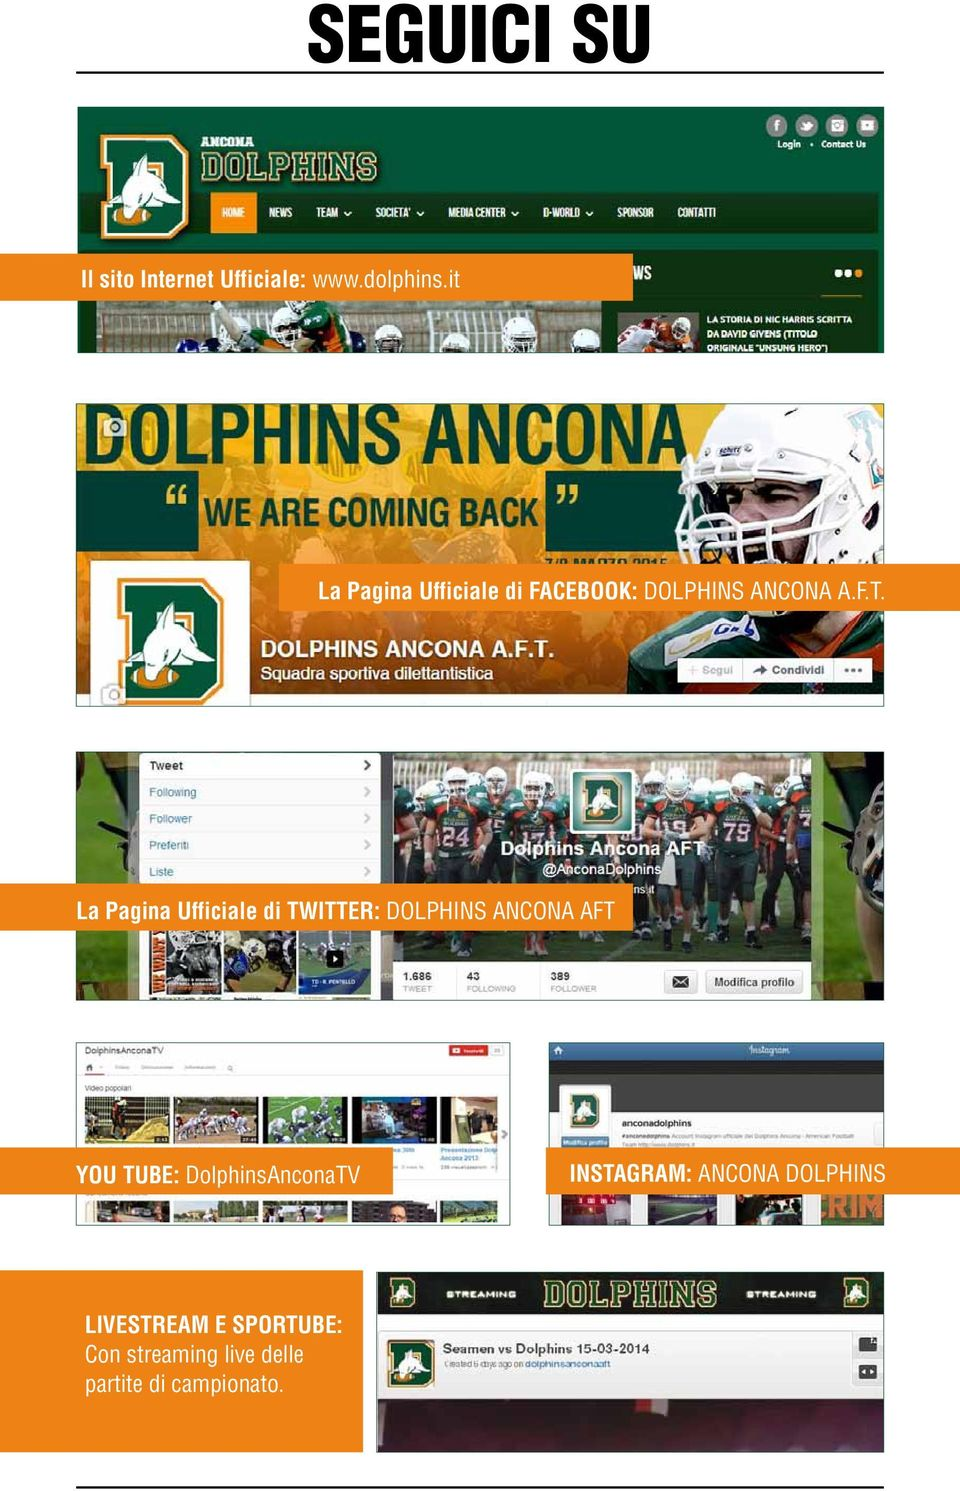 La Pagina Ufficiale di TWITTER: DOLPHINS ANCONA AFT YOU TUBE: